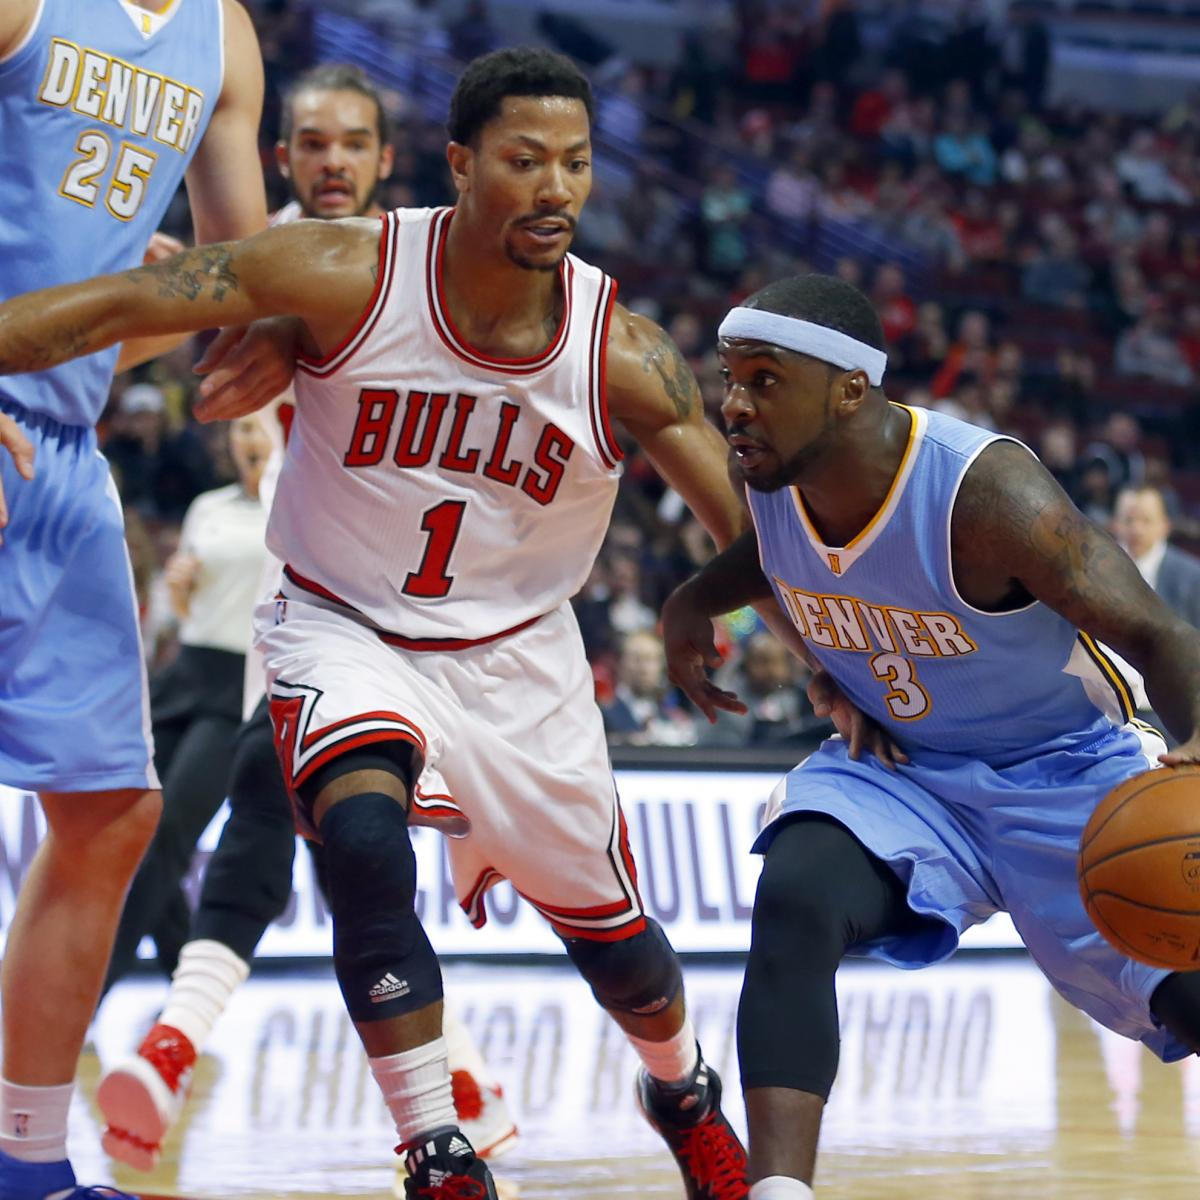 Chicago Bulls Vs. Denver Nuggets: Live Score, Highlights